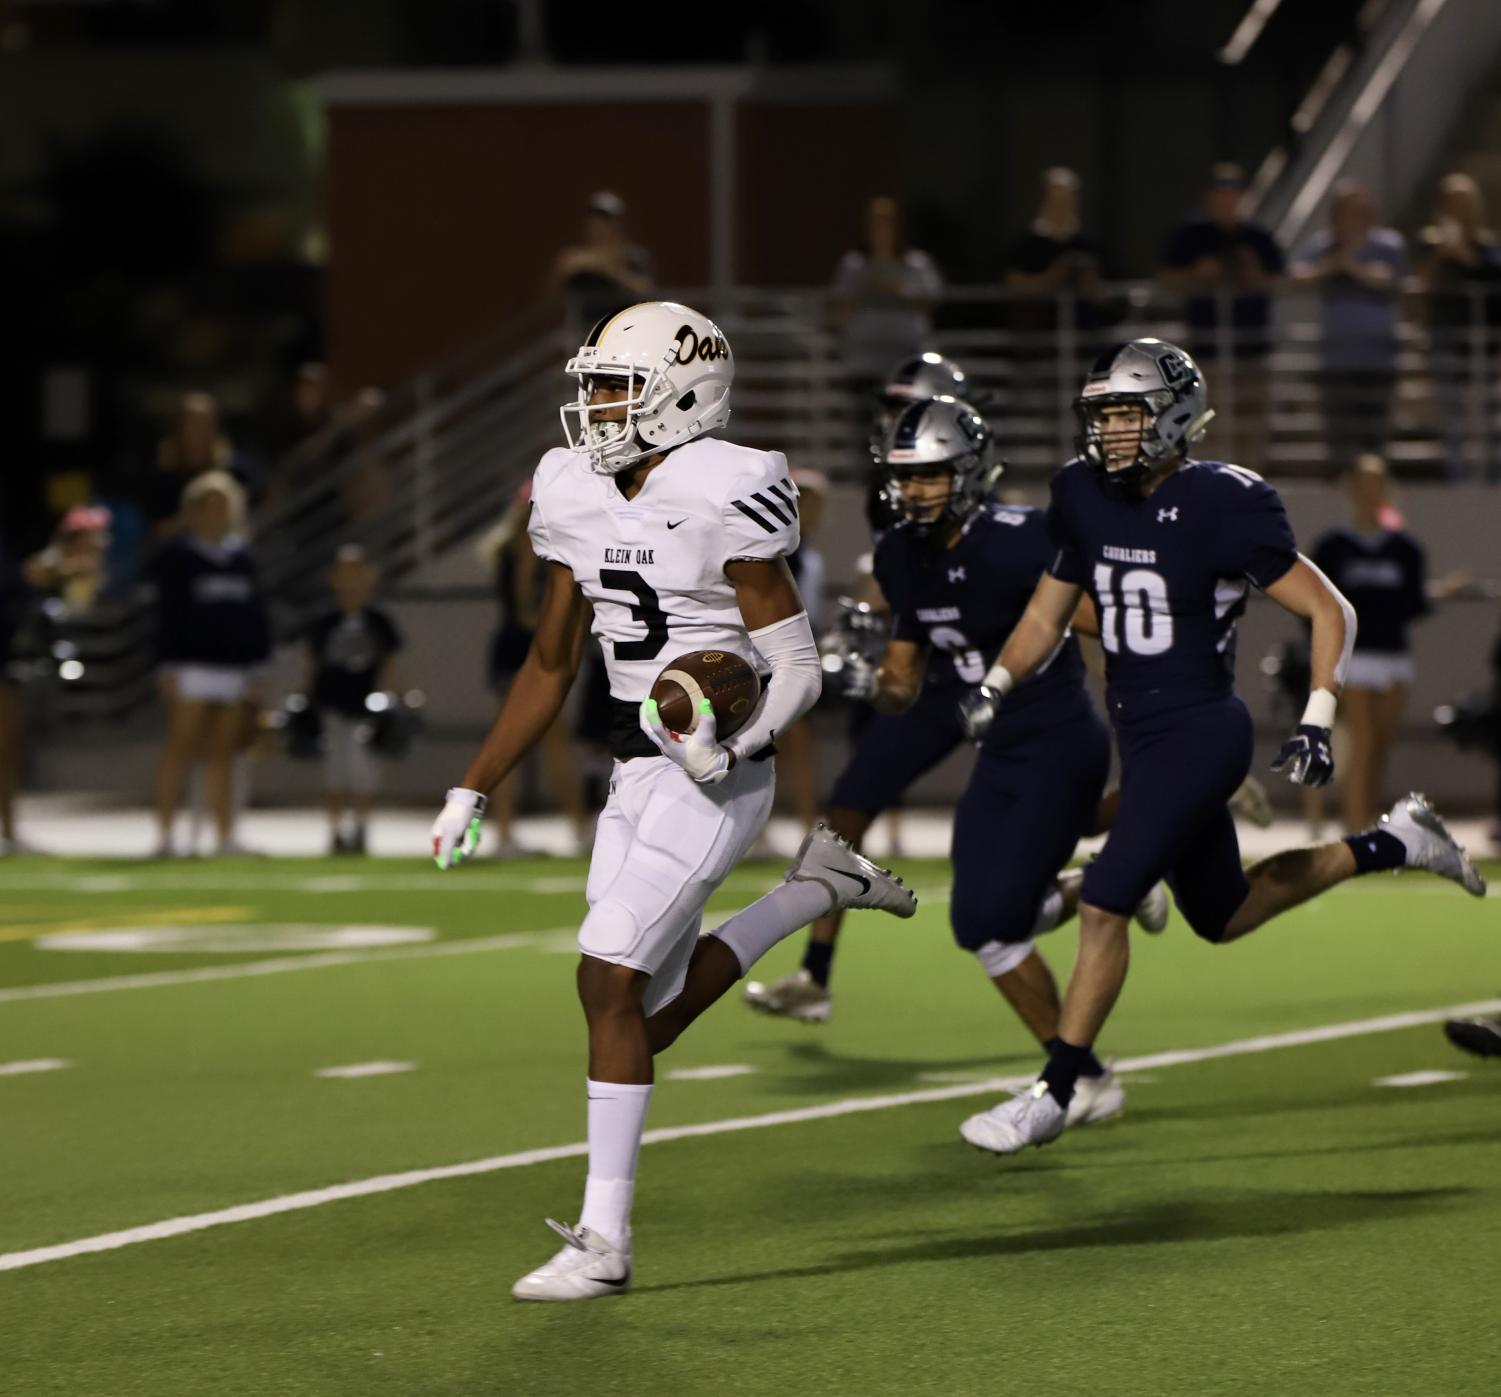 #3 Tyler Hudson runs the ball 50 plus yards for the Panthers first touchdown. Oak went on to win 14-13 and advance to the first round of playoffs.